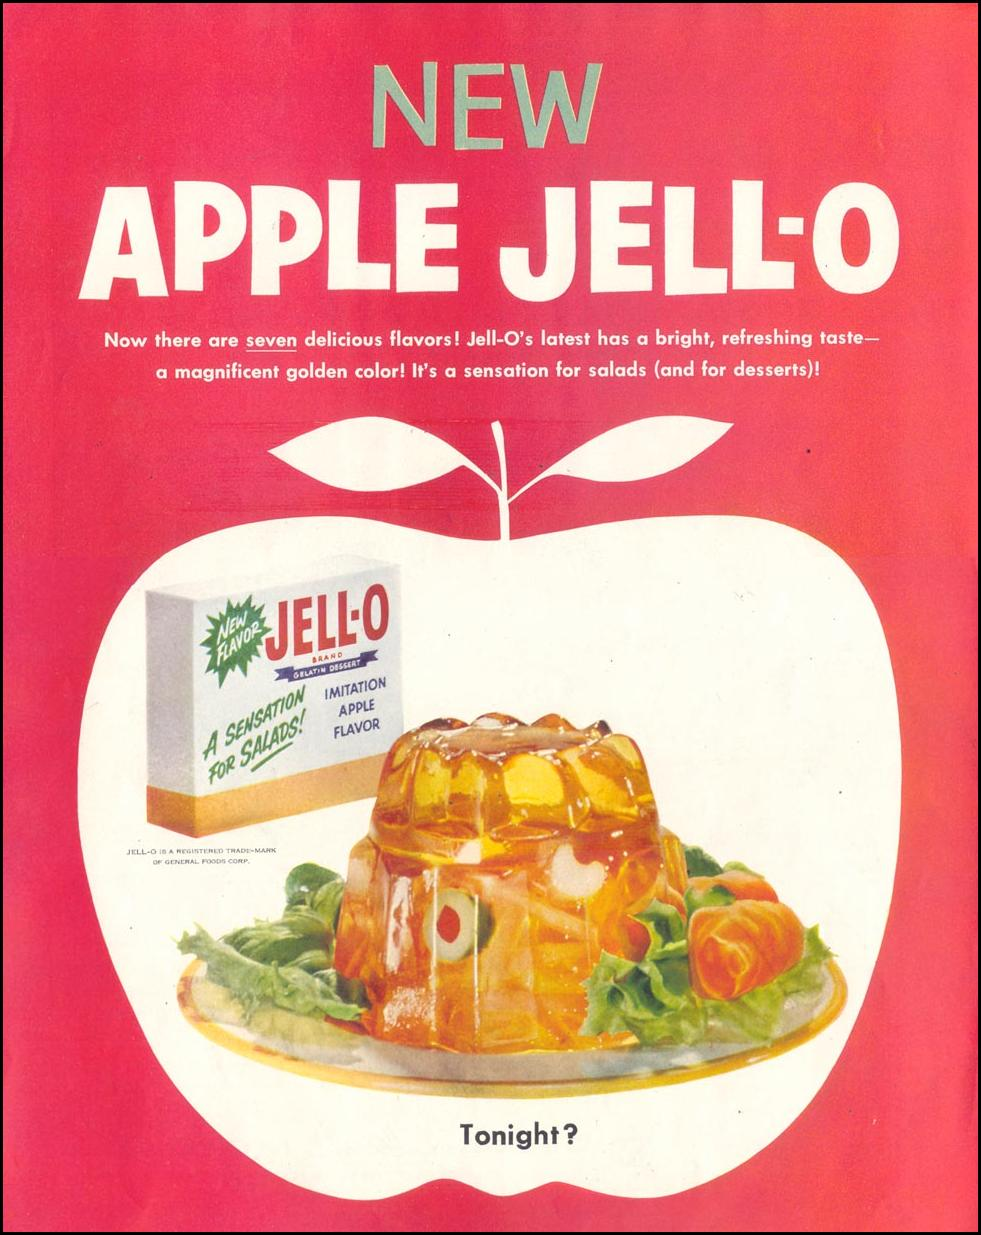 JELL-O SATURDAY EVENING POST 03/26/1955 p. 50